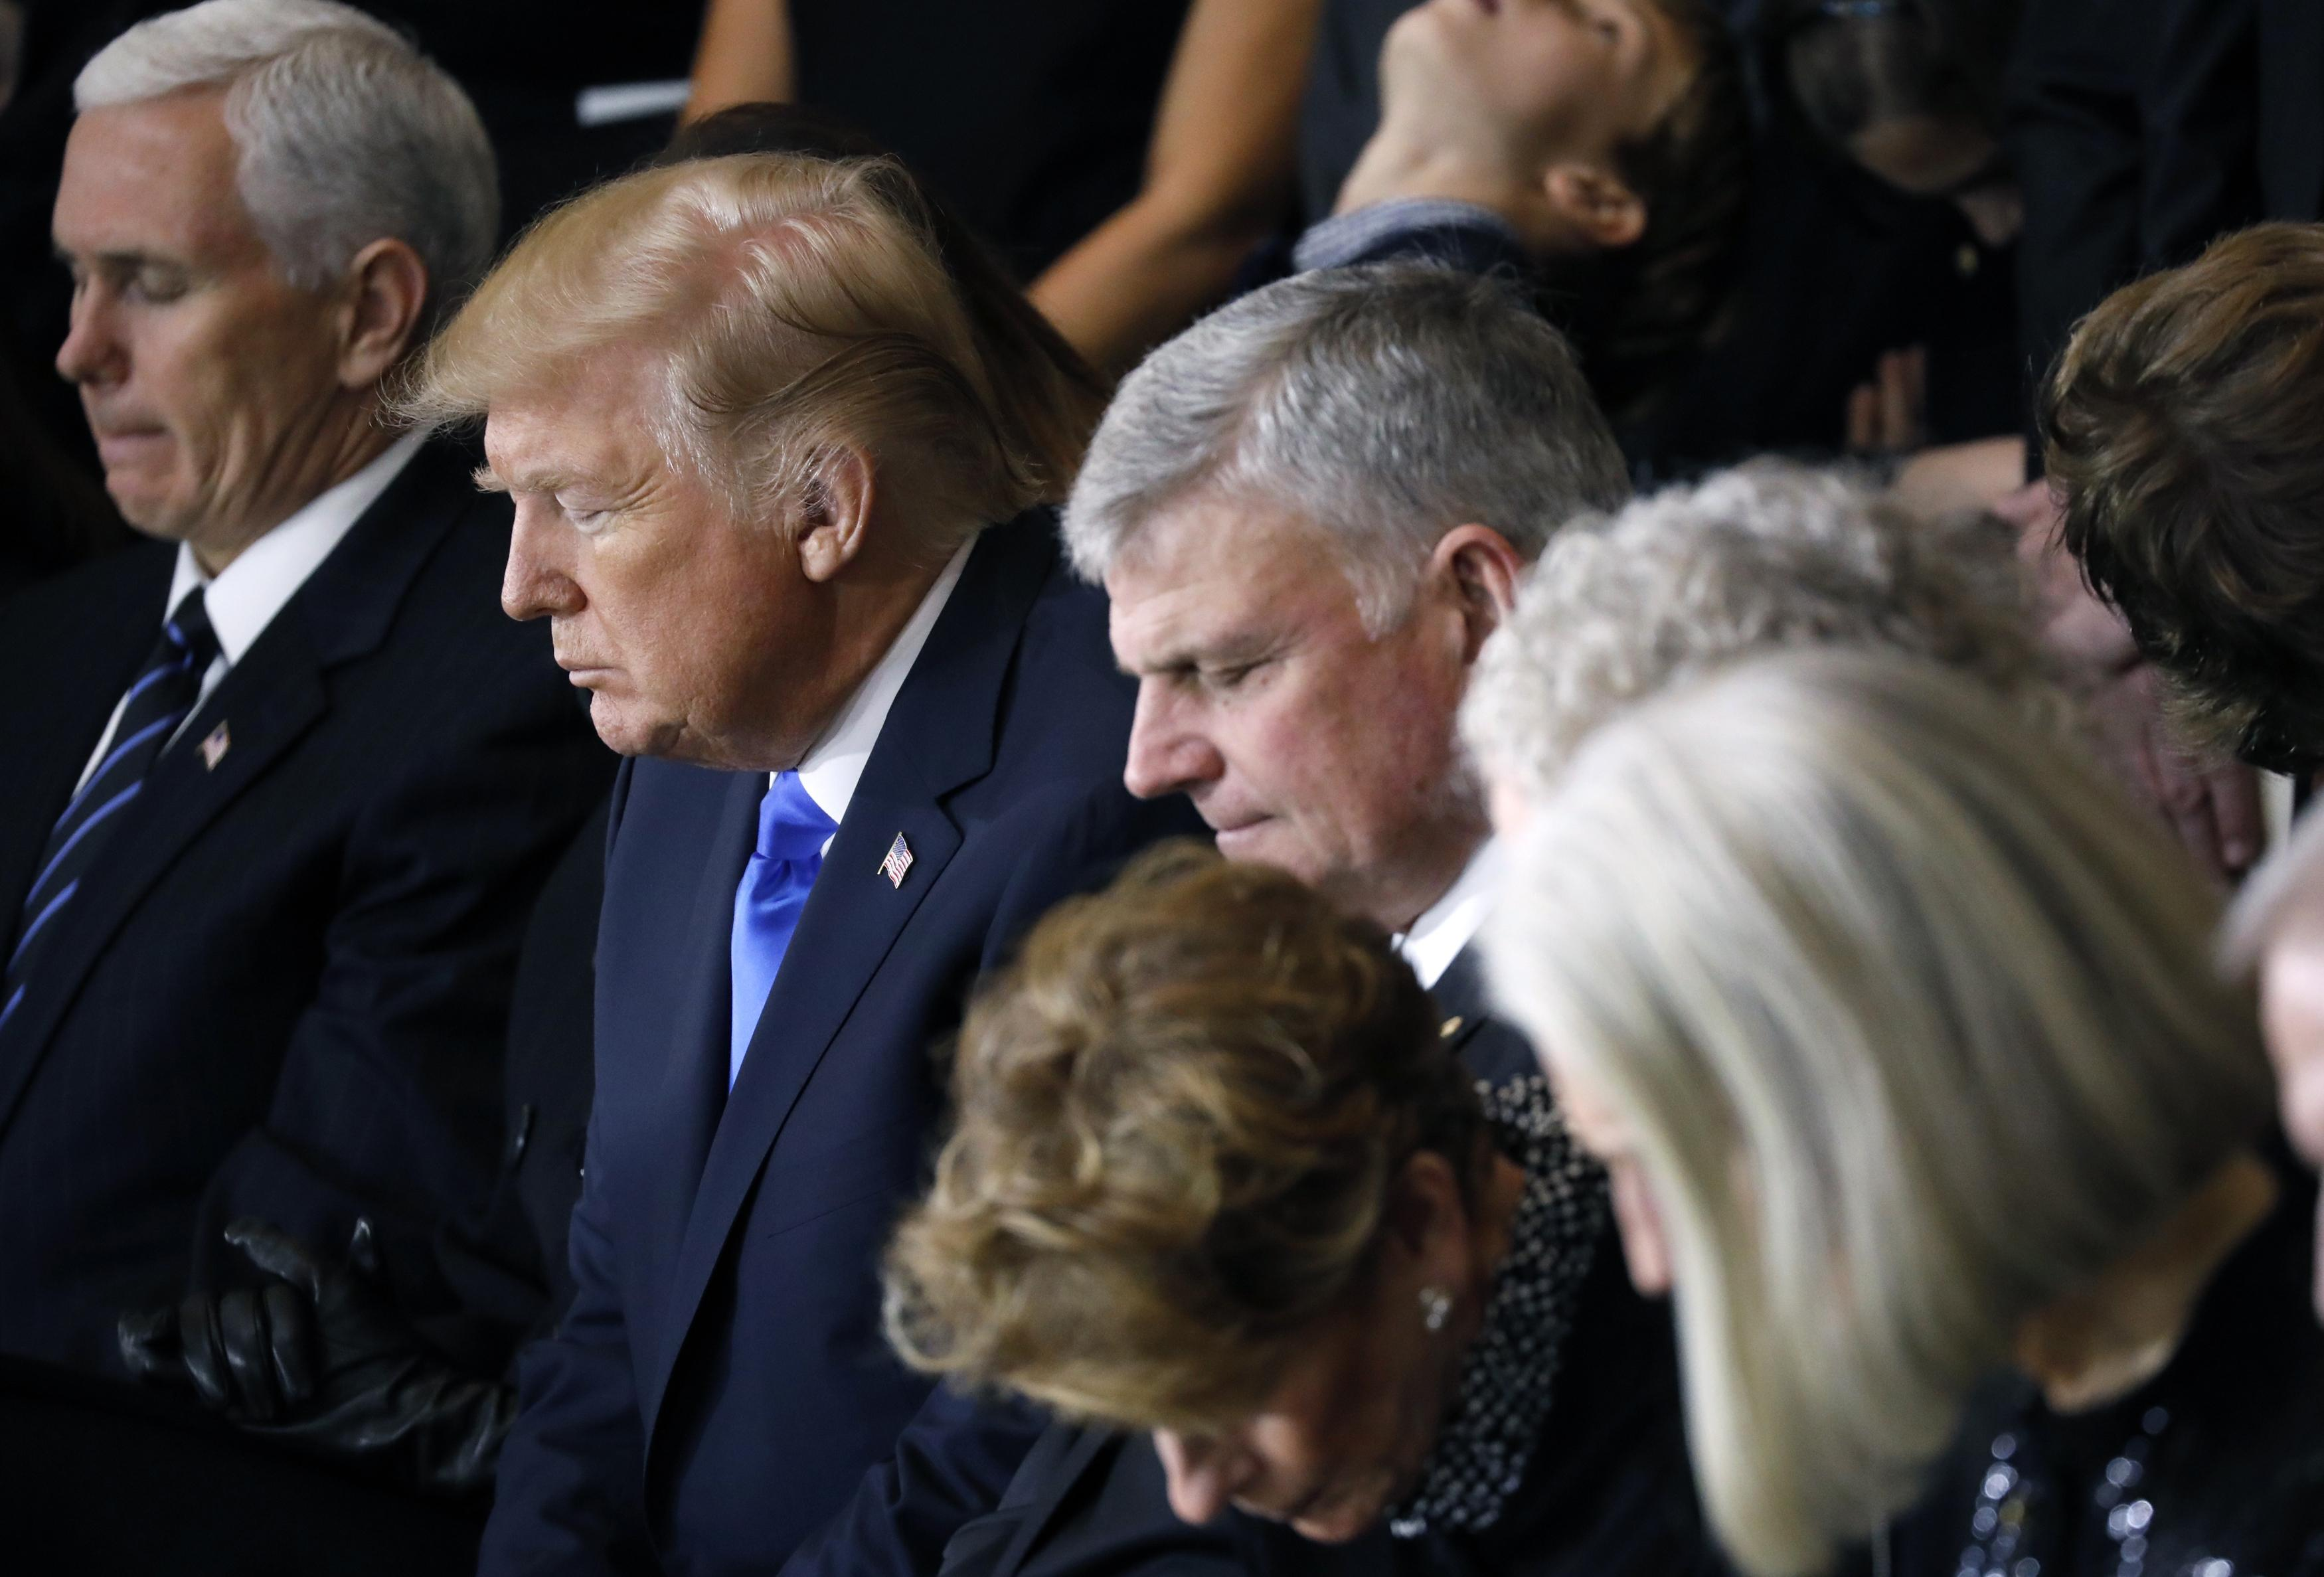 Franklin Graham calls for 'special day of prayer' for Trump: 'This is a critical time for America'